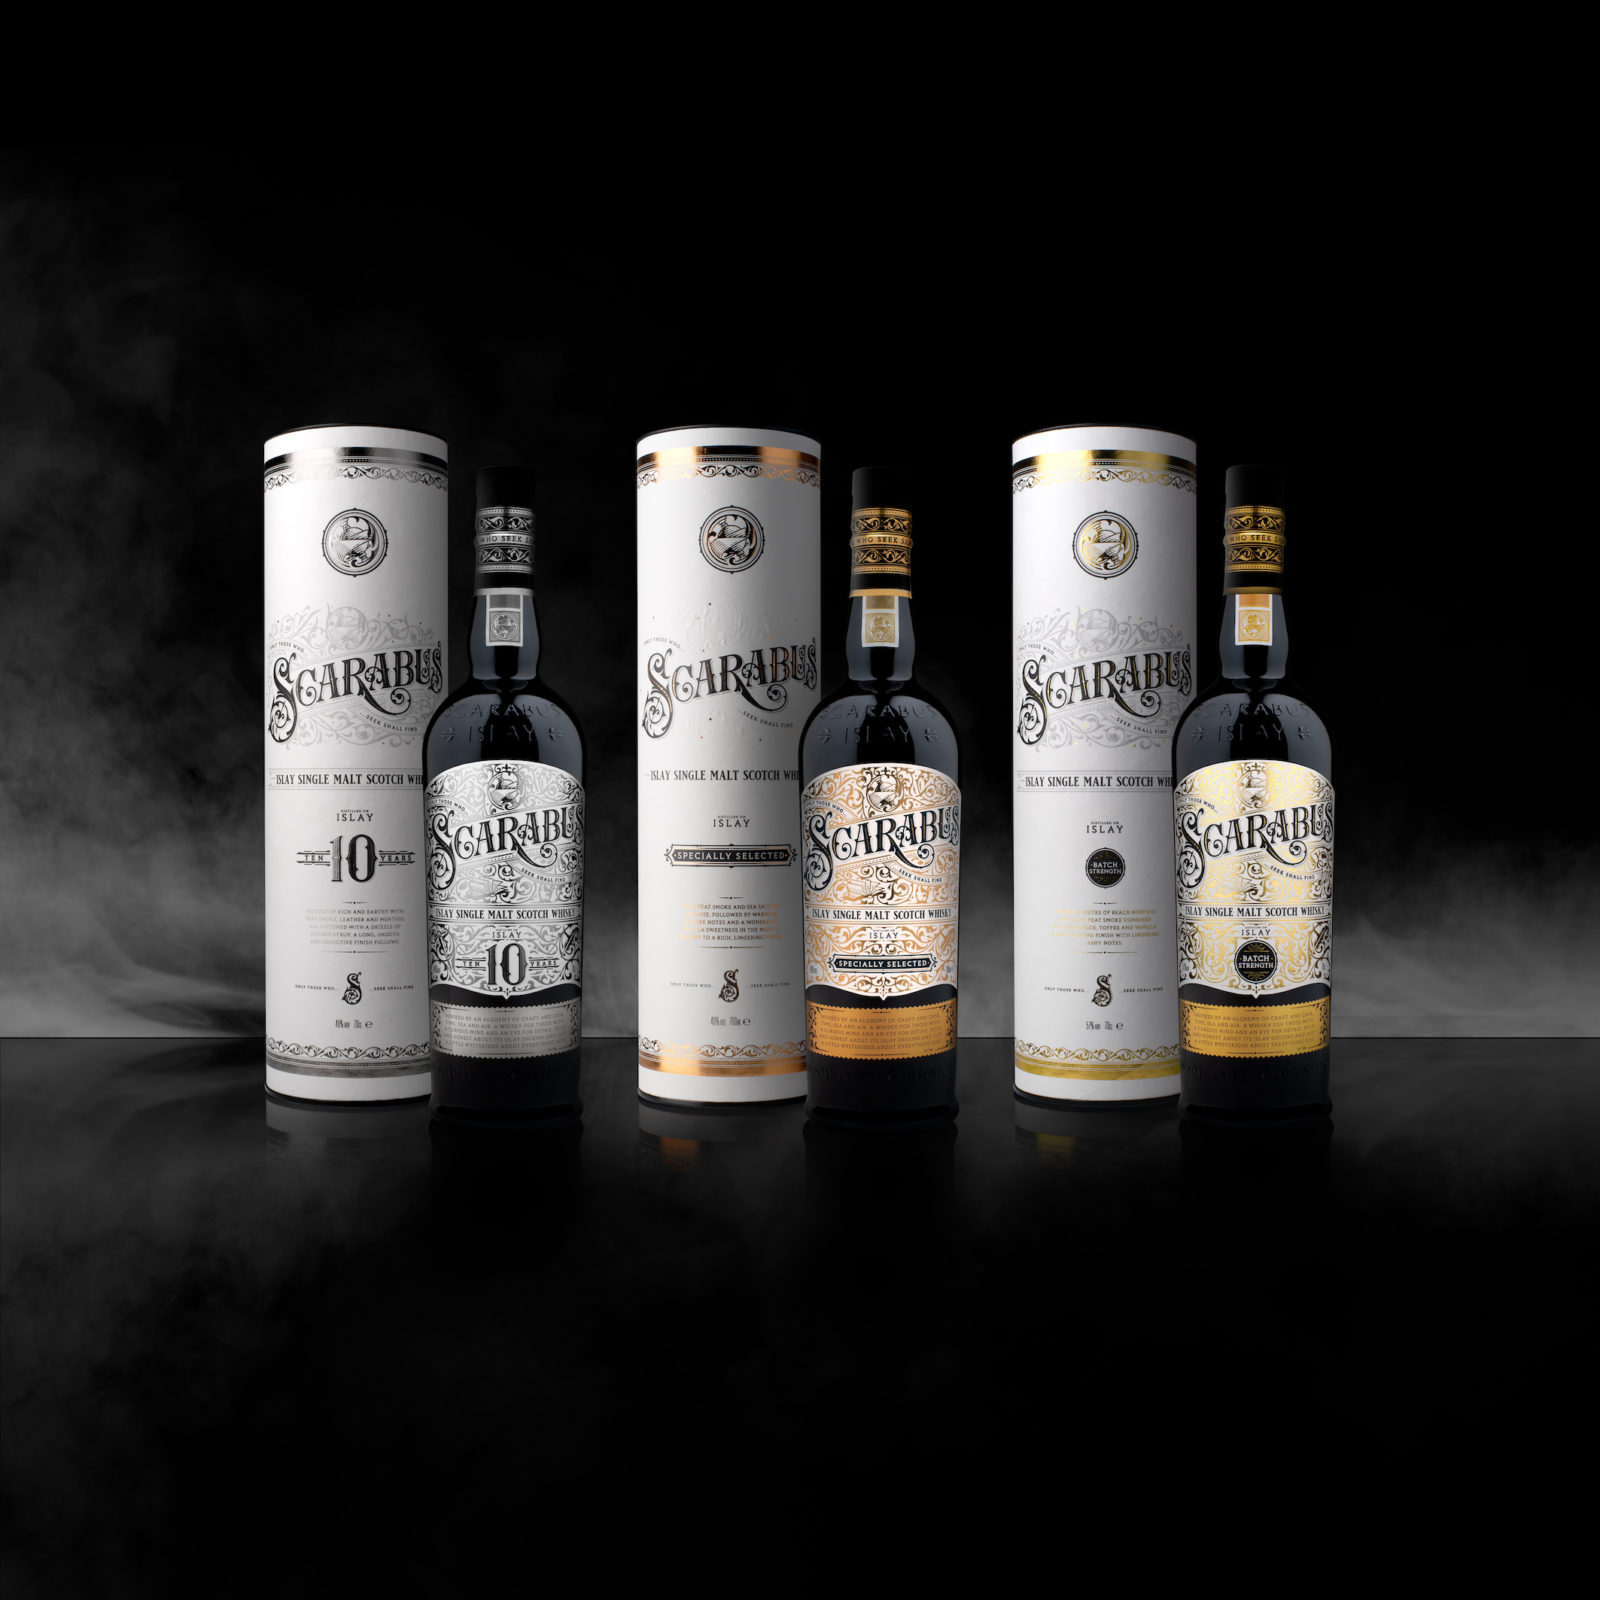 Hunter Laing & Co. Has Introduced Two Brand-new Bottlings To The Scarabus Islay Single Malt Whisky Range photo